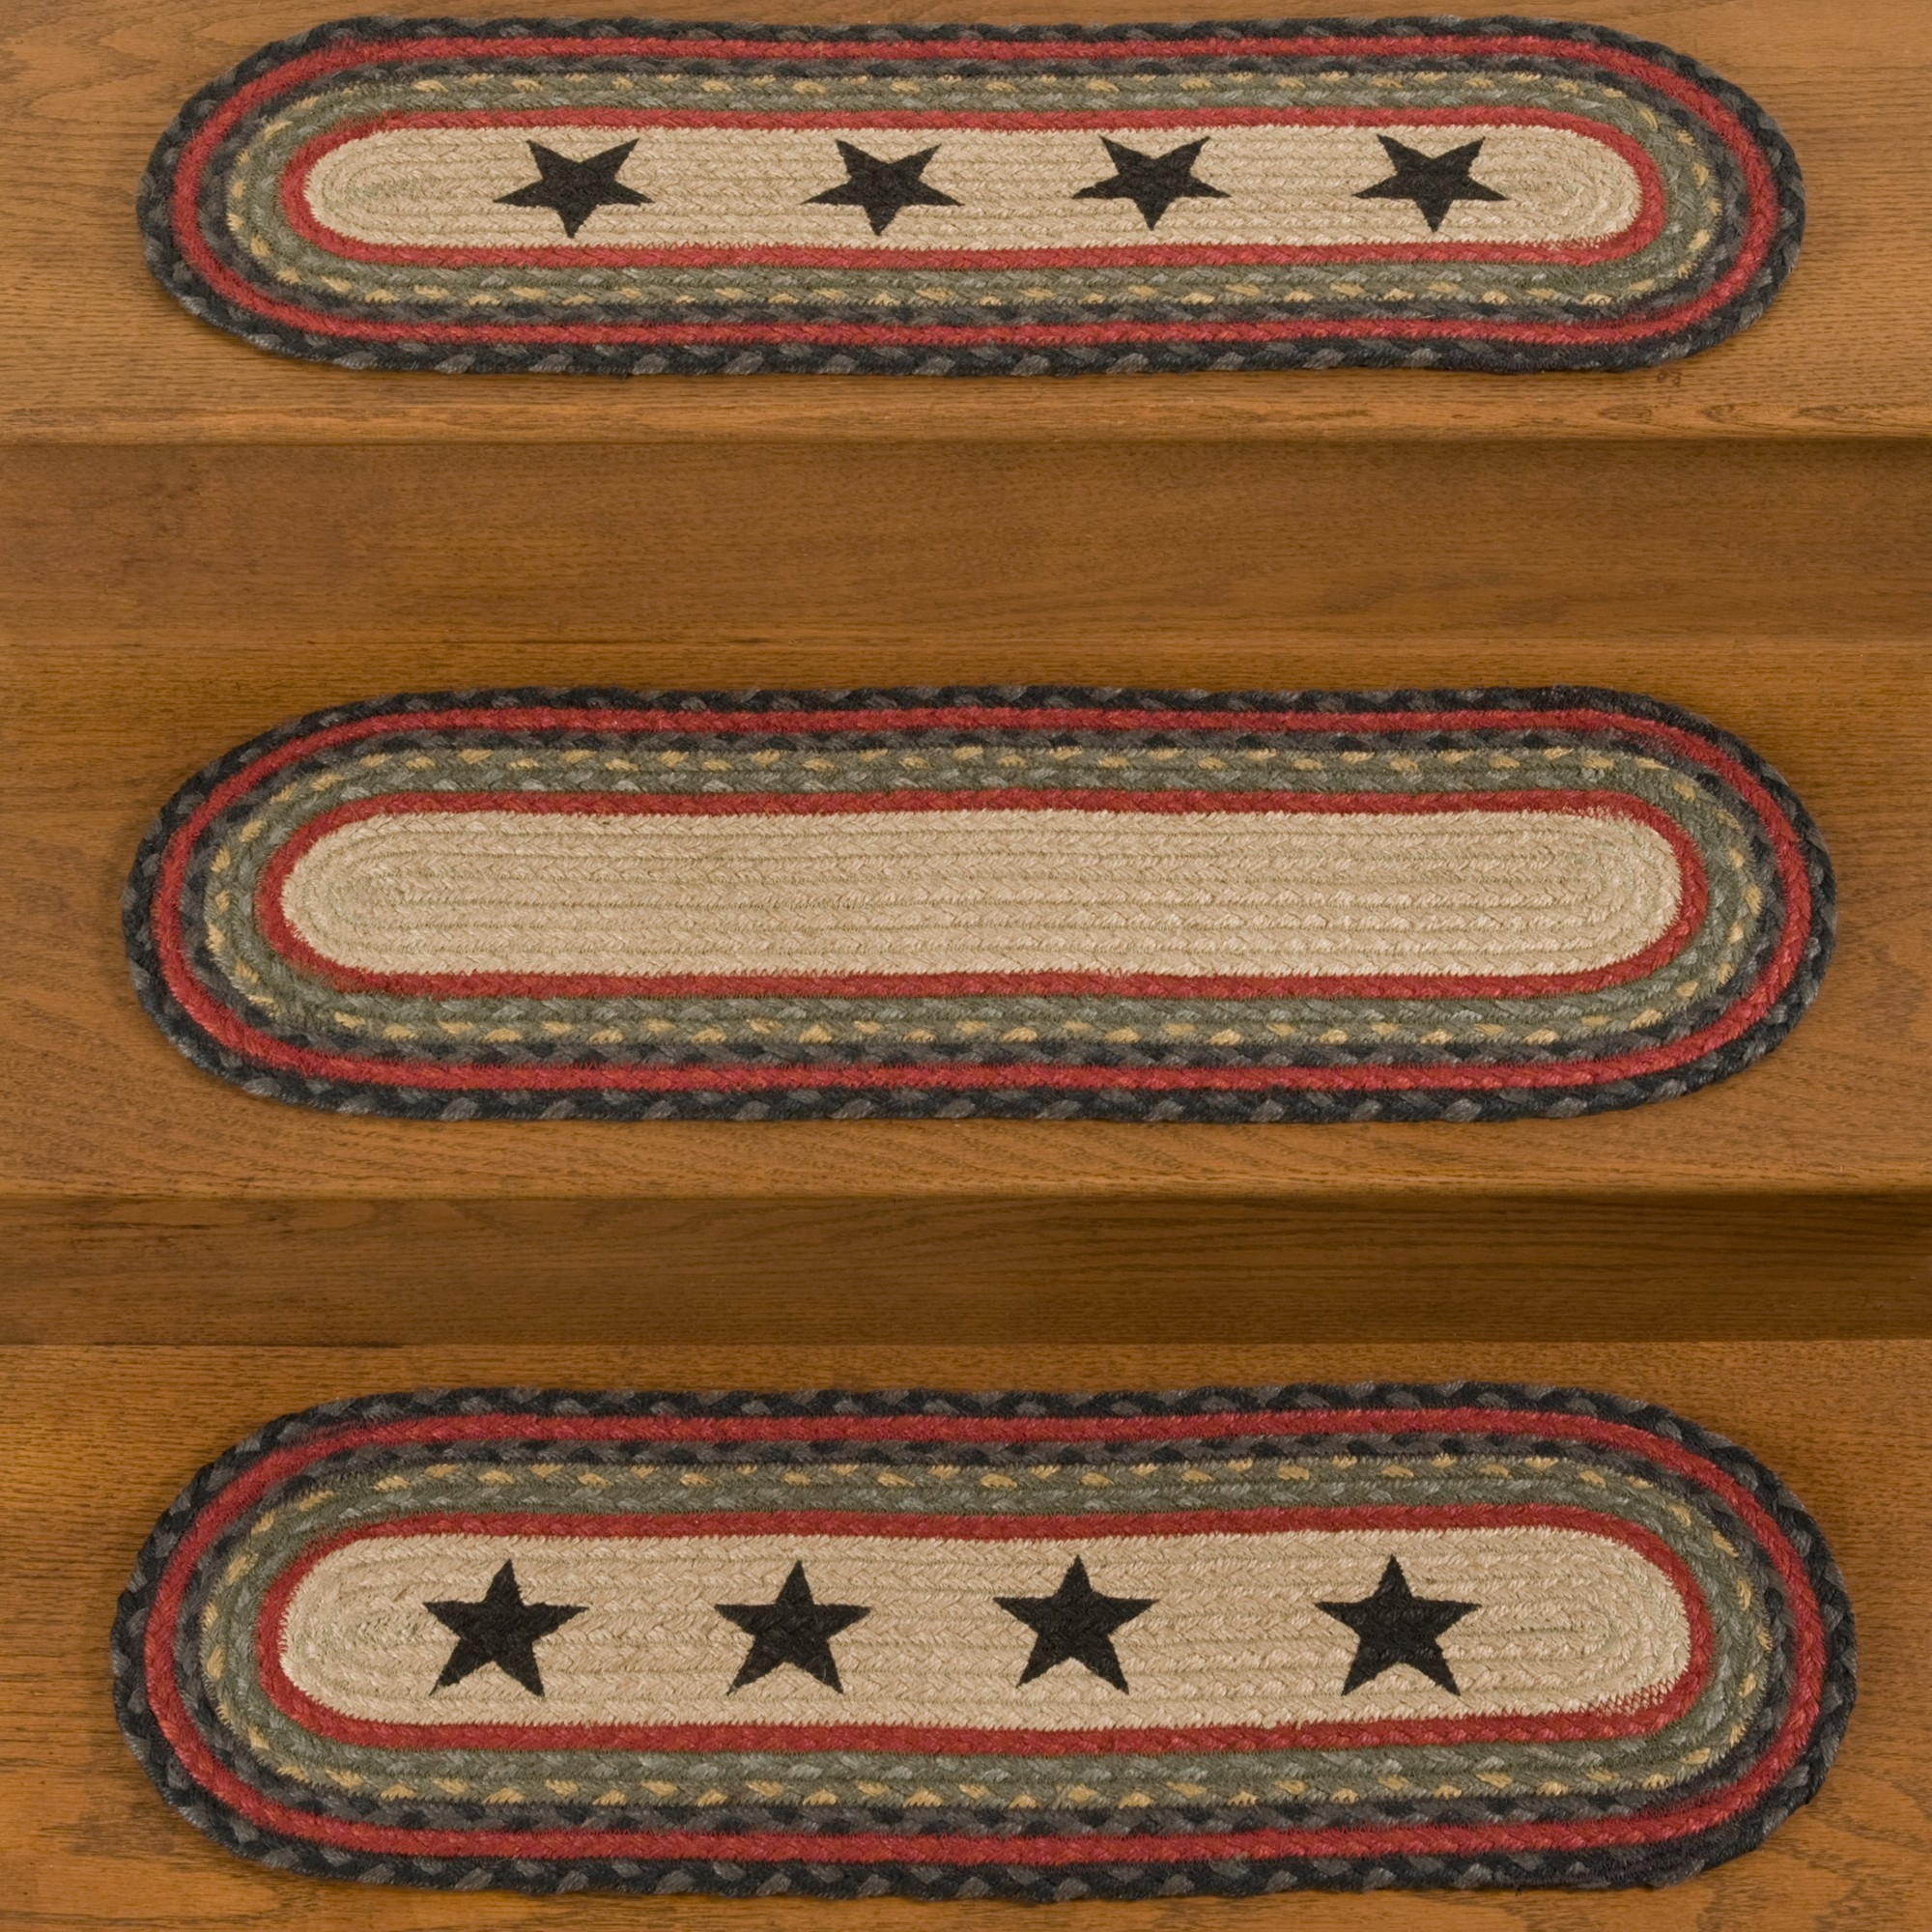 Braided Rugs For Stairs Roselawnlutheran Intended For Colonial Mills Stair Tread Rugs (#6 of 20)